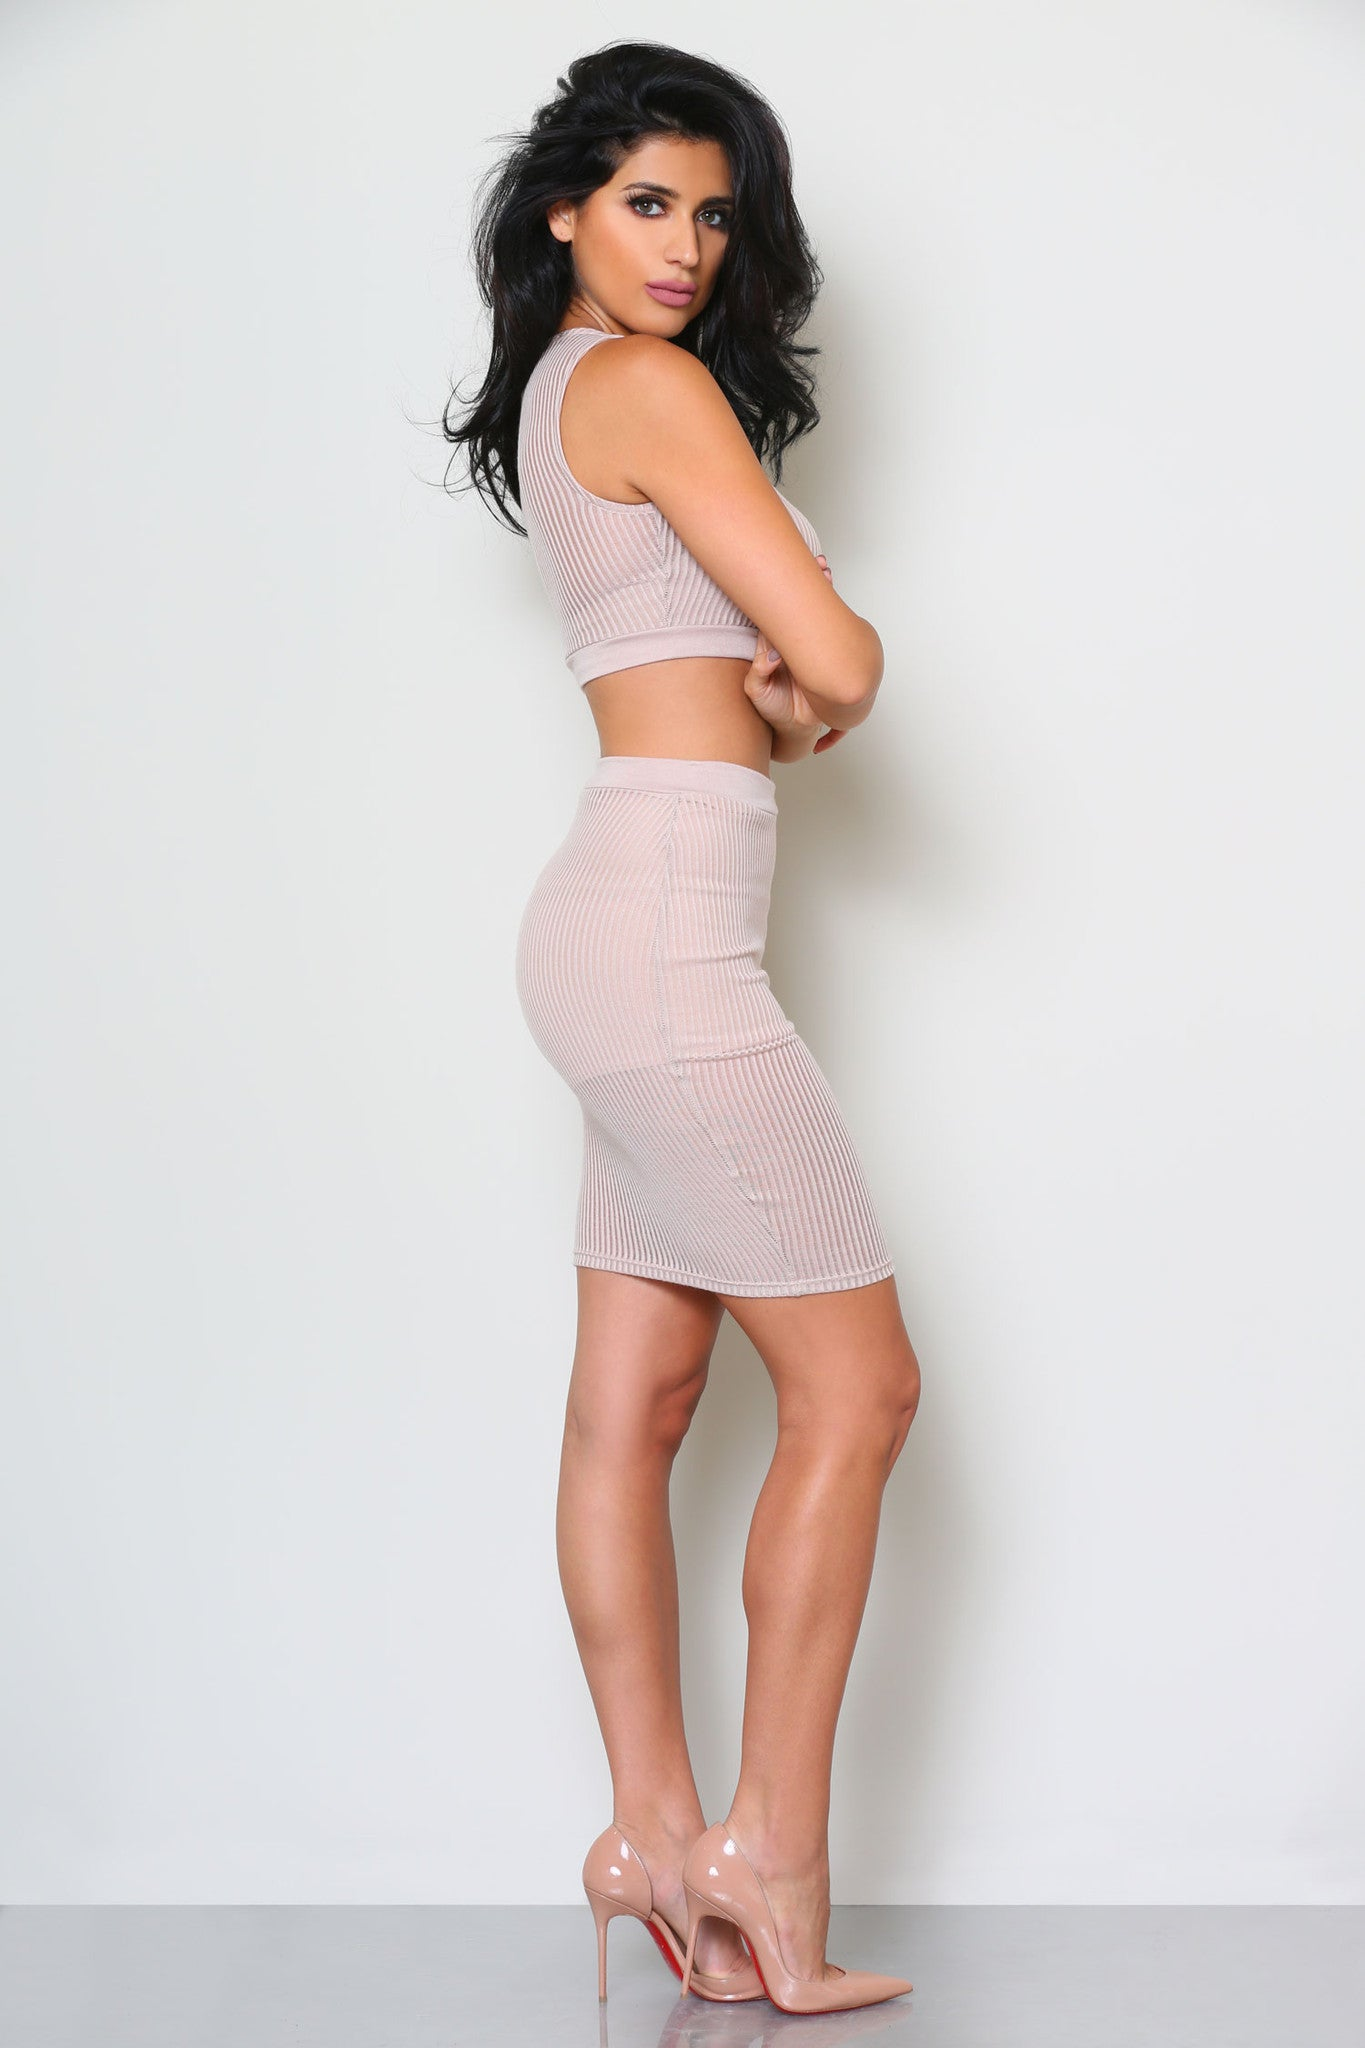 HELENA CROP TOP AND SKIRT SET (SOLD SEPARATELY) - Glam Envy - 2